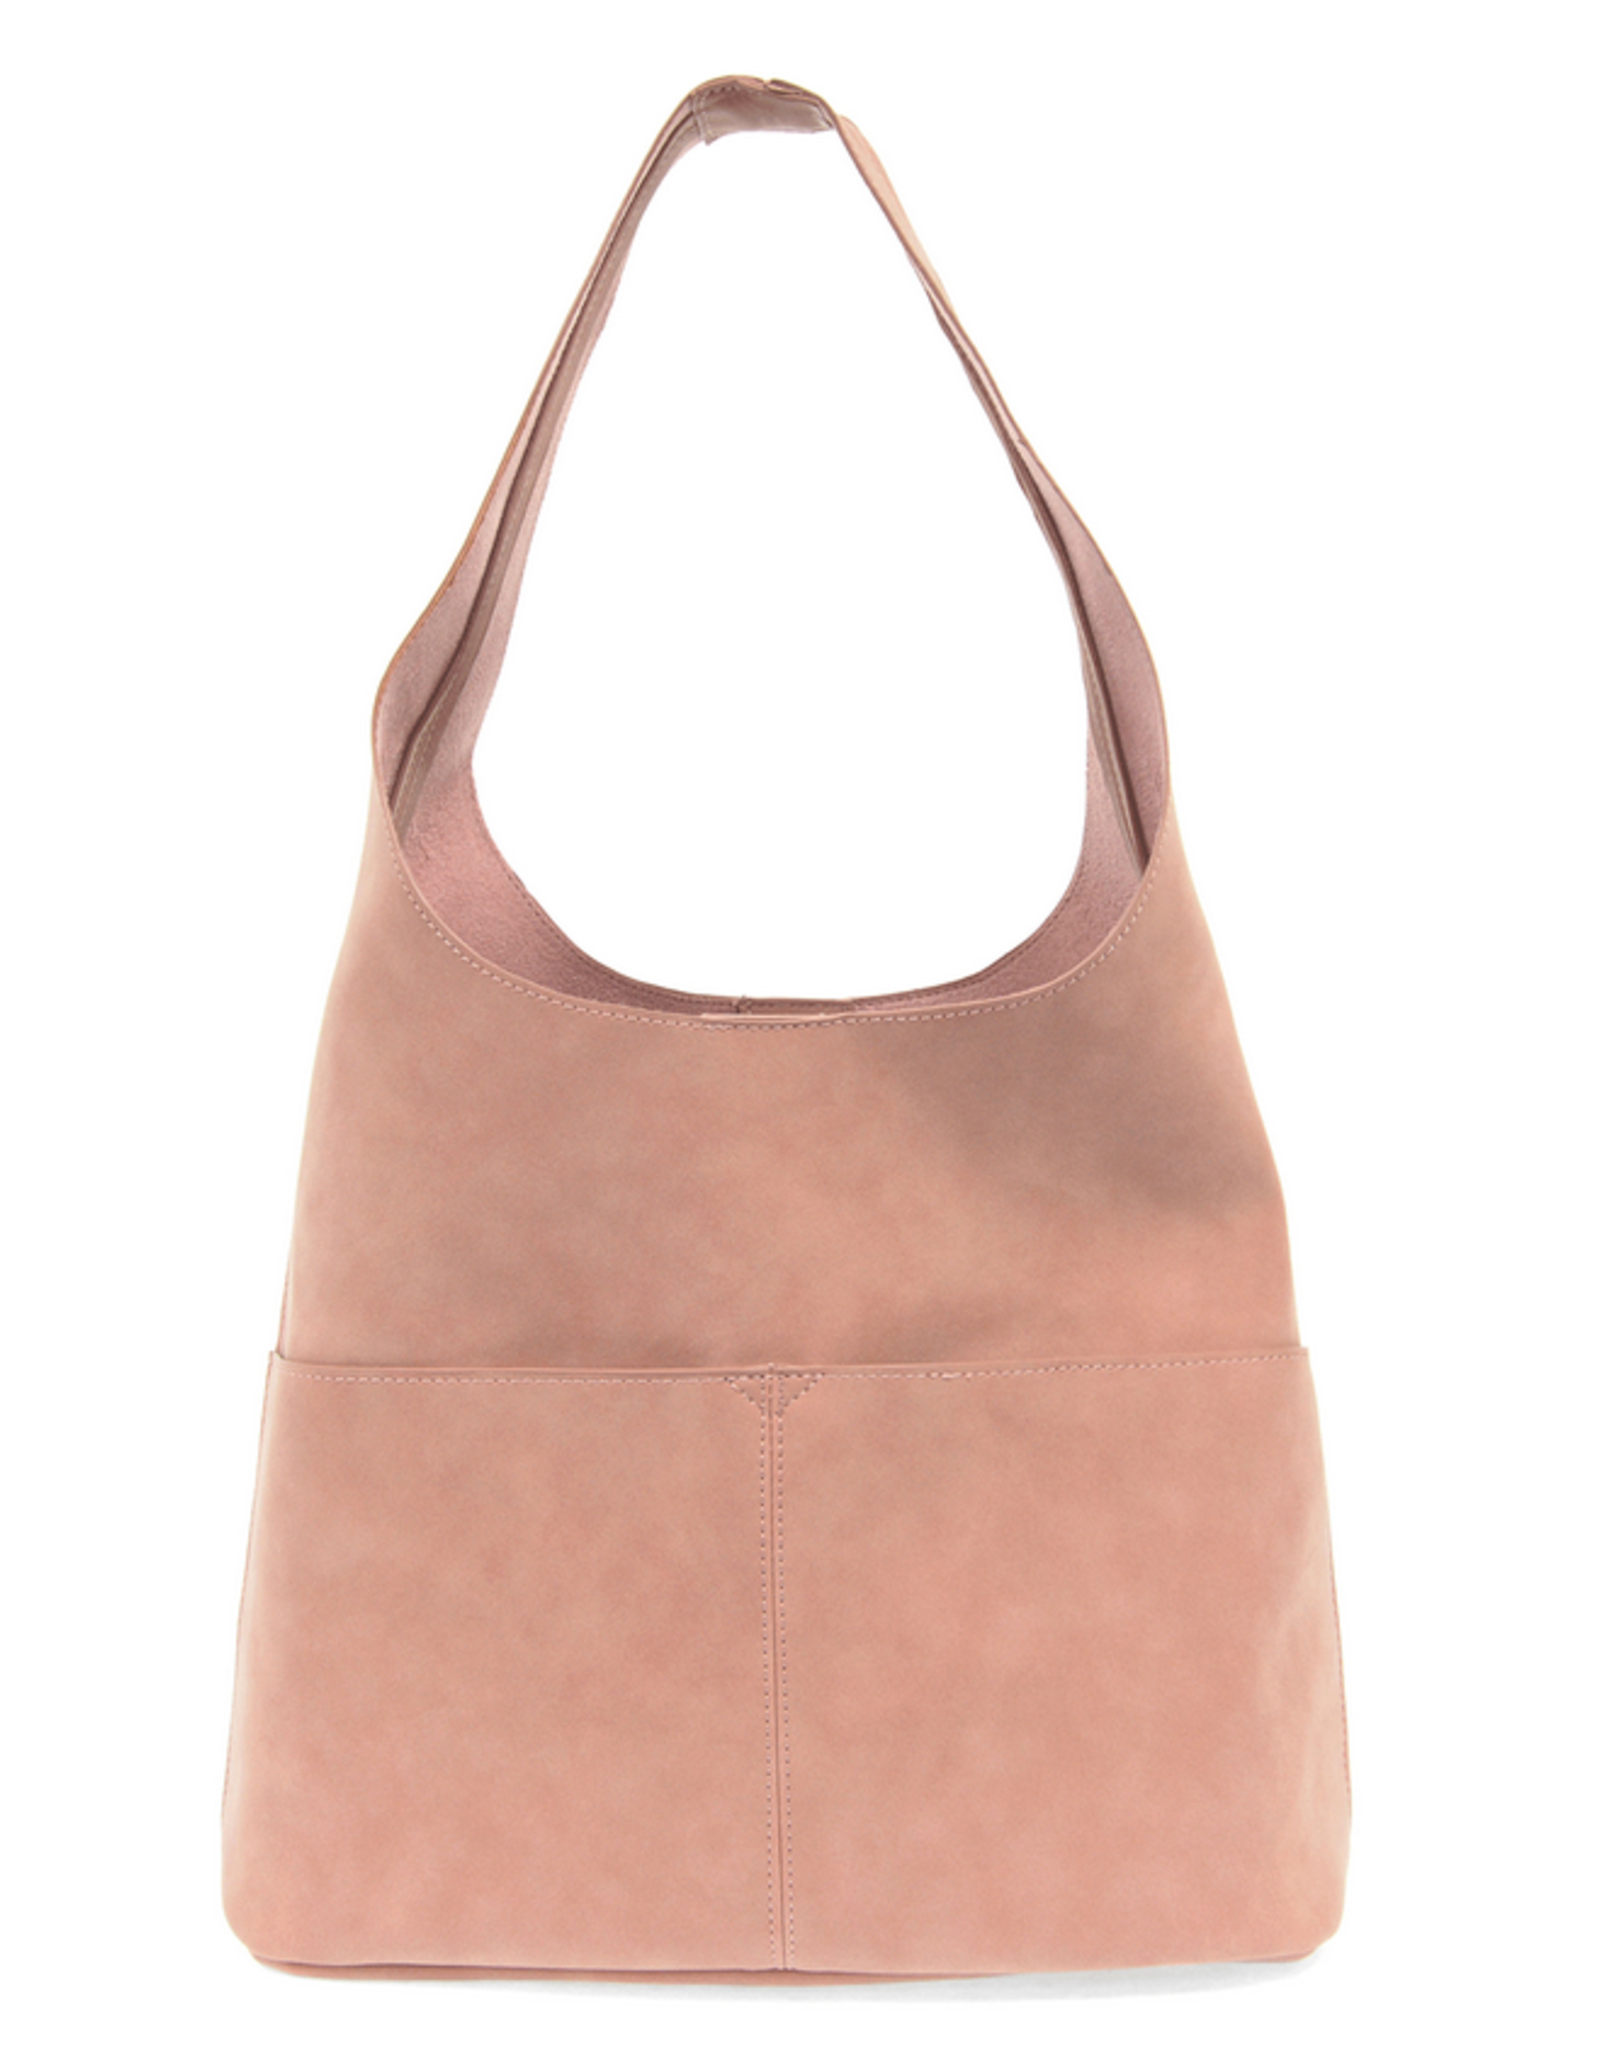 Joy Accessories Jenny Suede Hobo Handbag